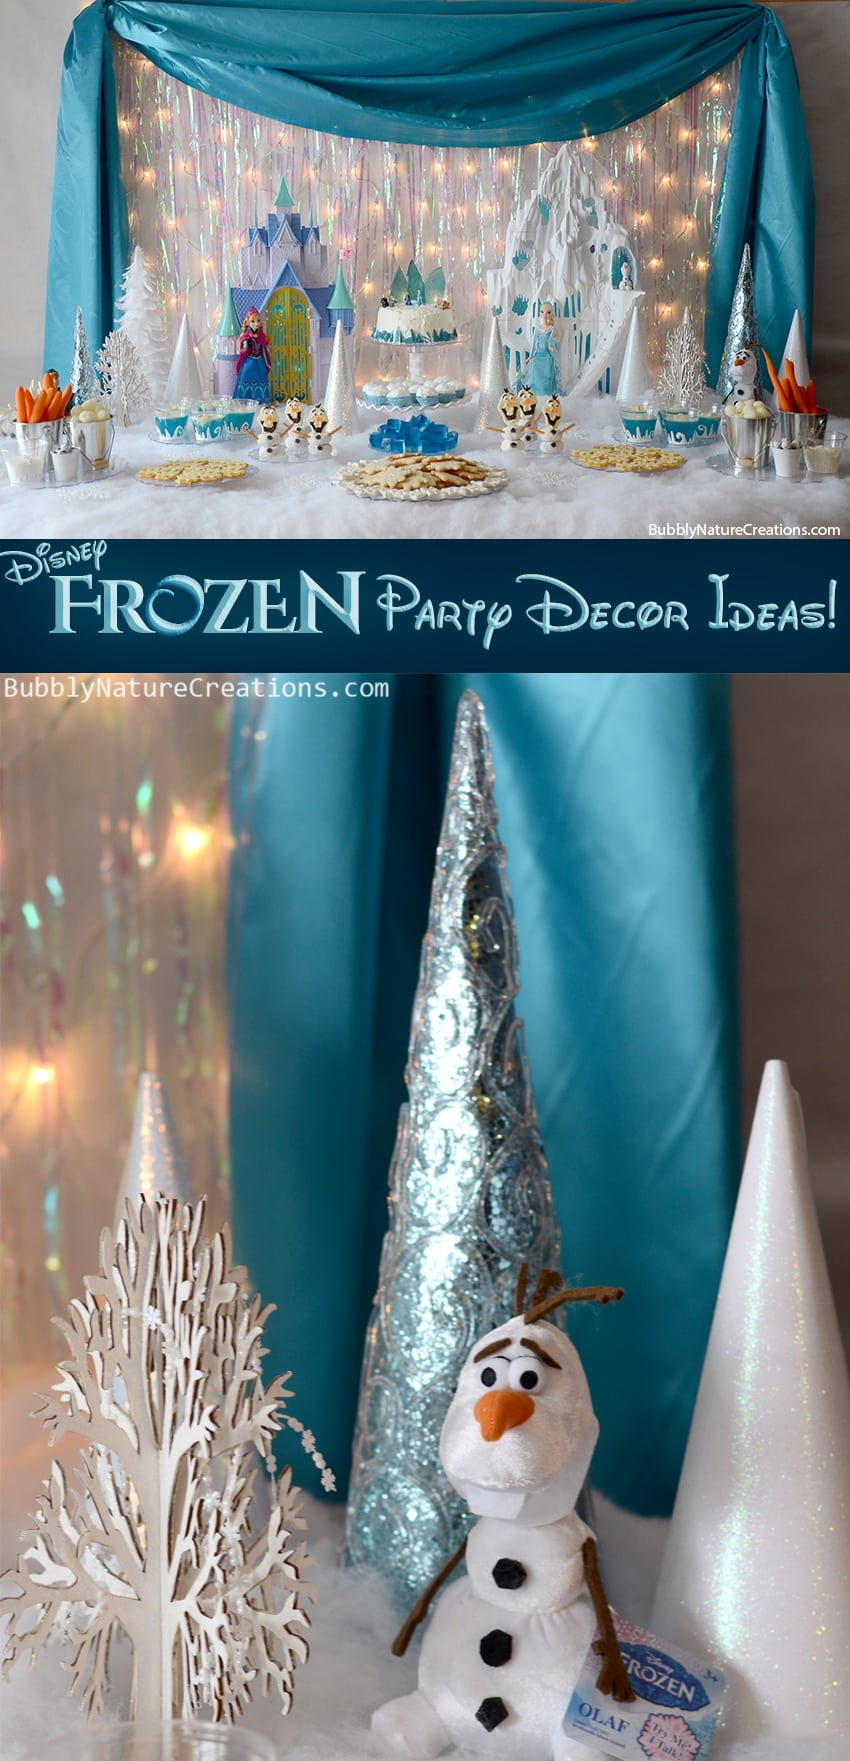 7 Things You Must Have at Your Frozen Party | Catch My Party |Frozen Birthday Decor Ideas